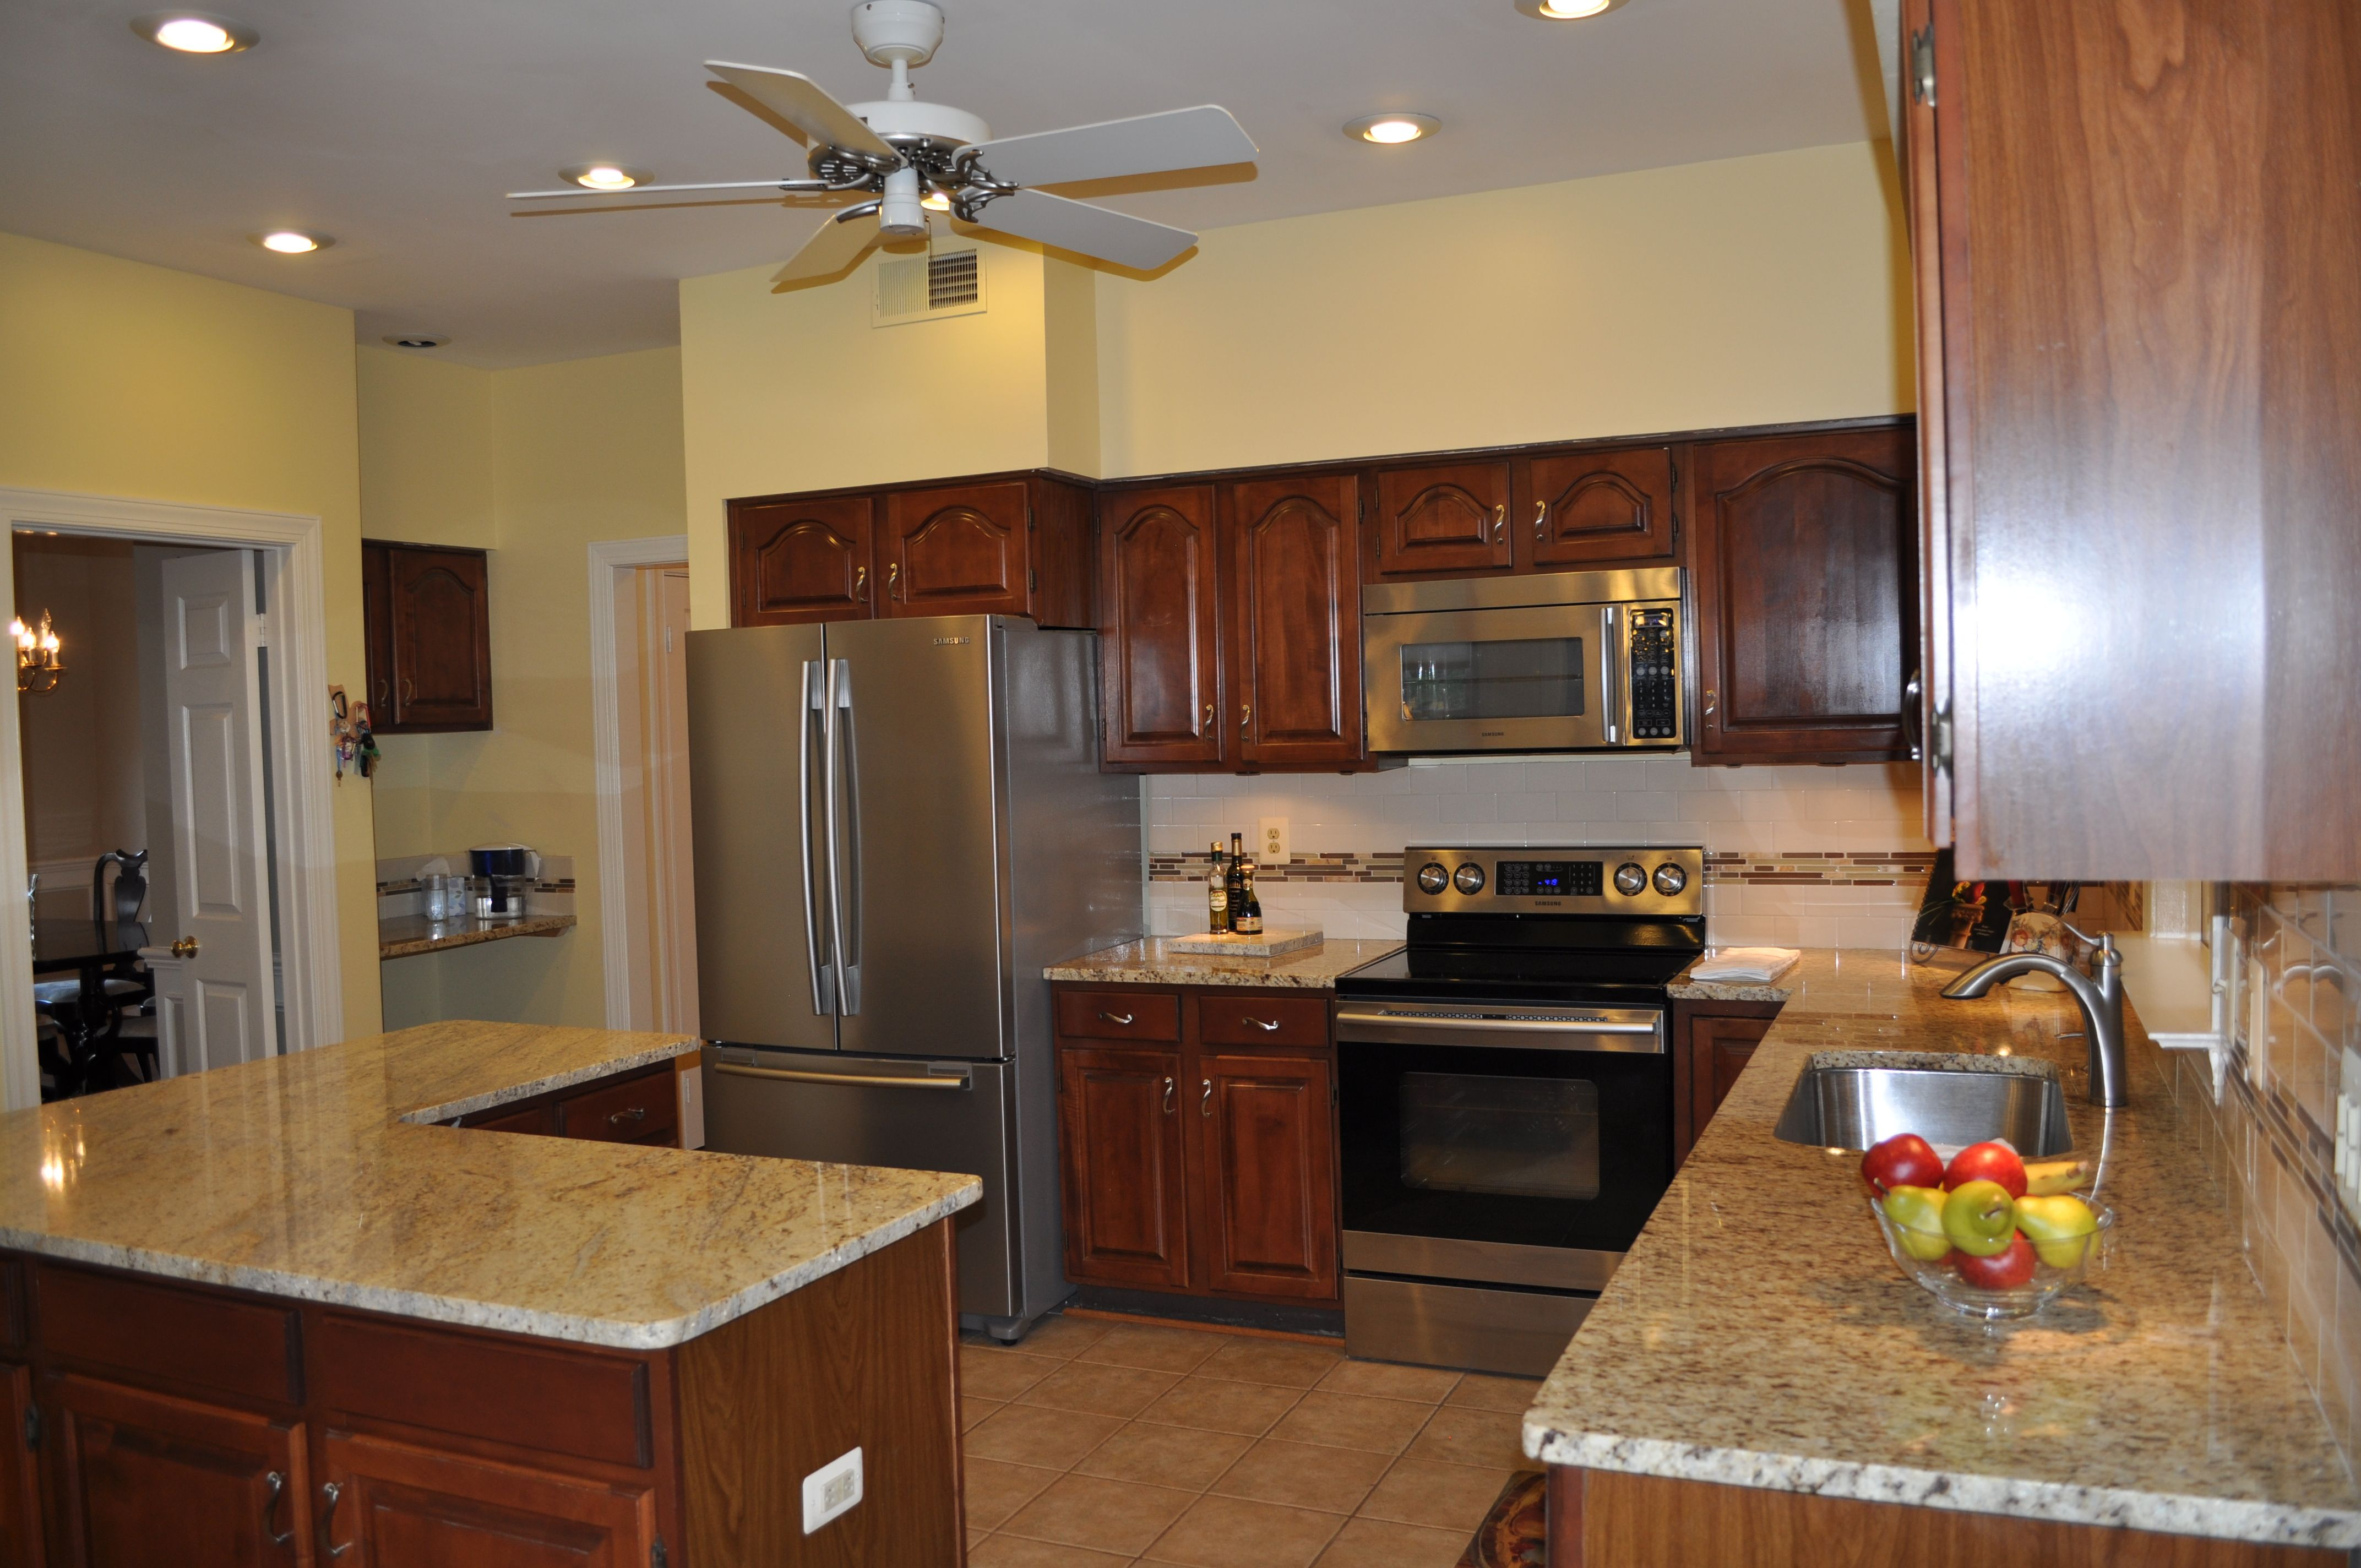 they have hundreds of Open Kitchen Design Ideas setups and ideas posted     kitchen   Pinterest   Open kitchens  Kitchen design and Kitchens. they have hundreds of Open Kitchen Design Ideas setups and ideas